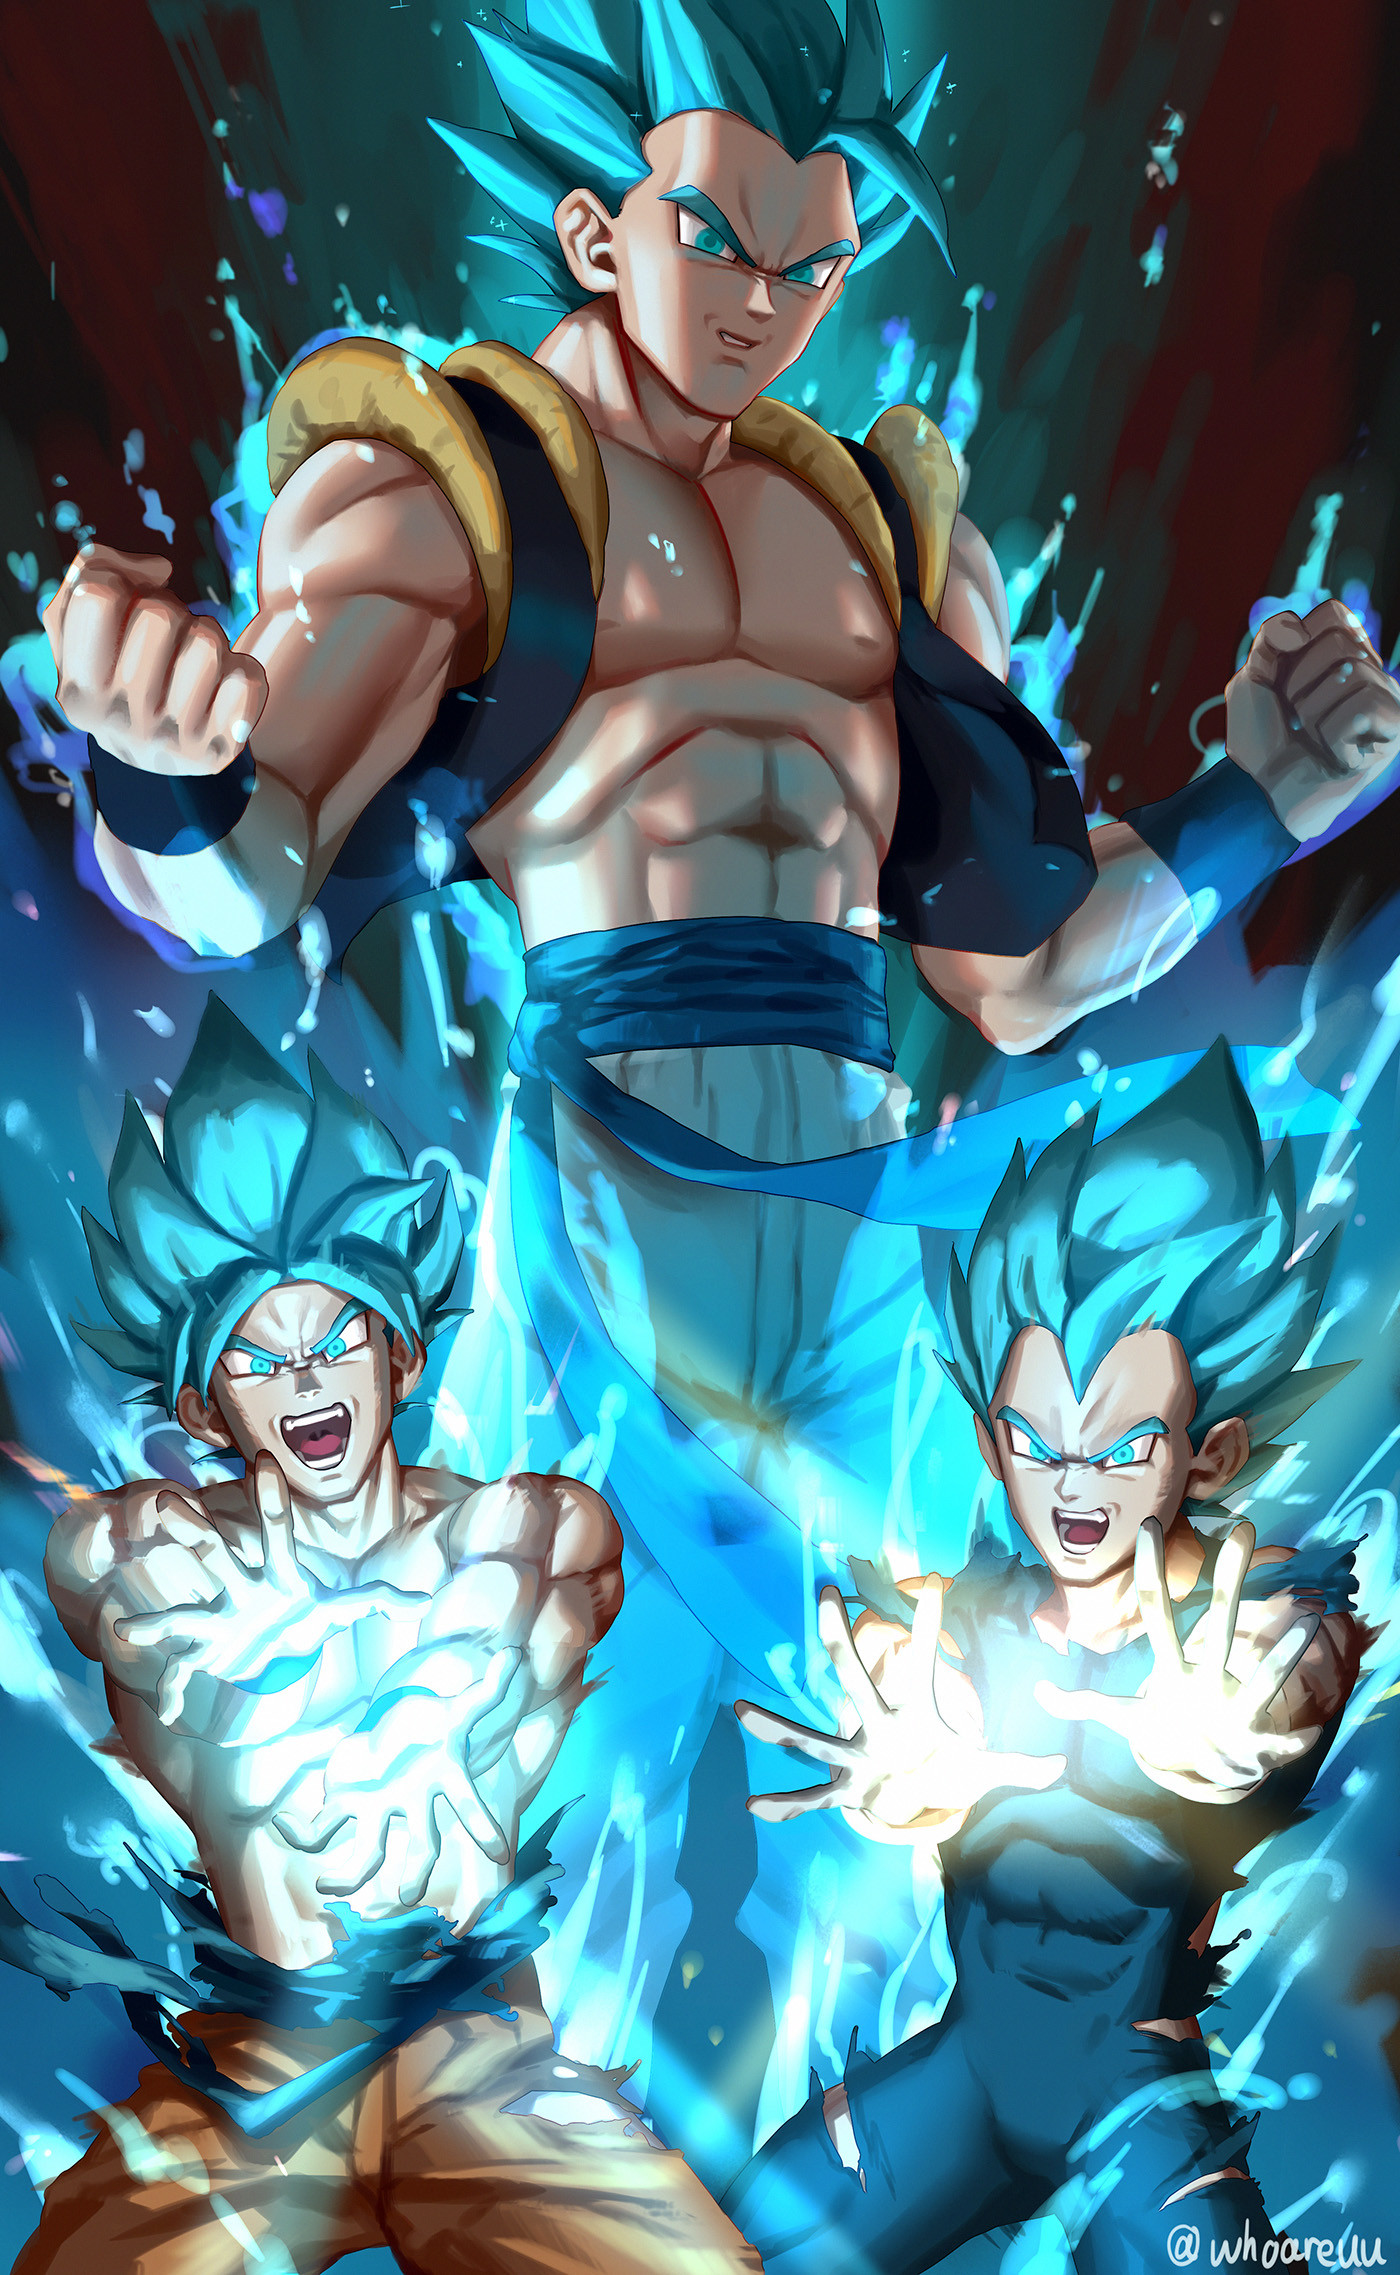 The strongest fusion, WHO ._01